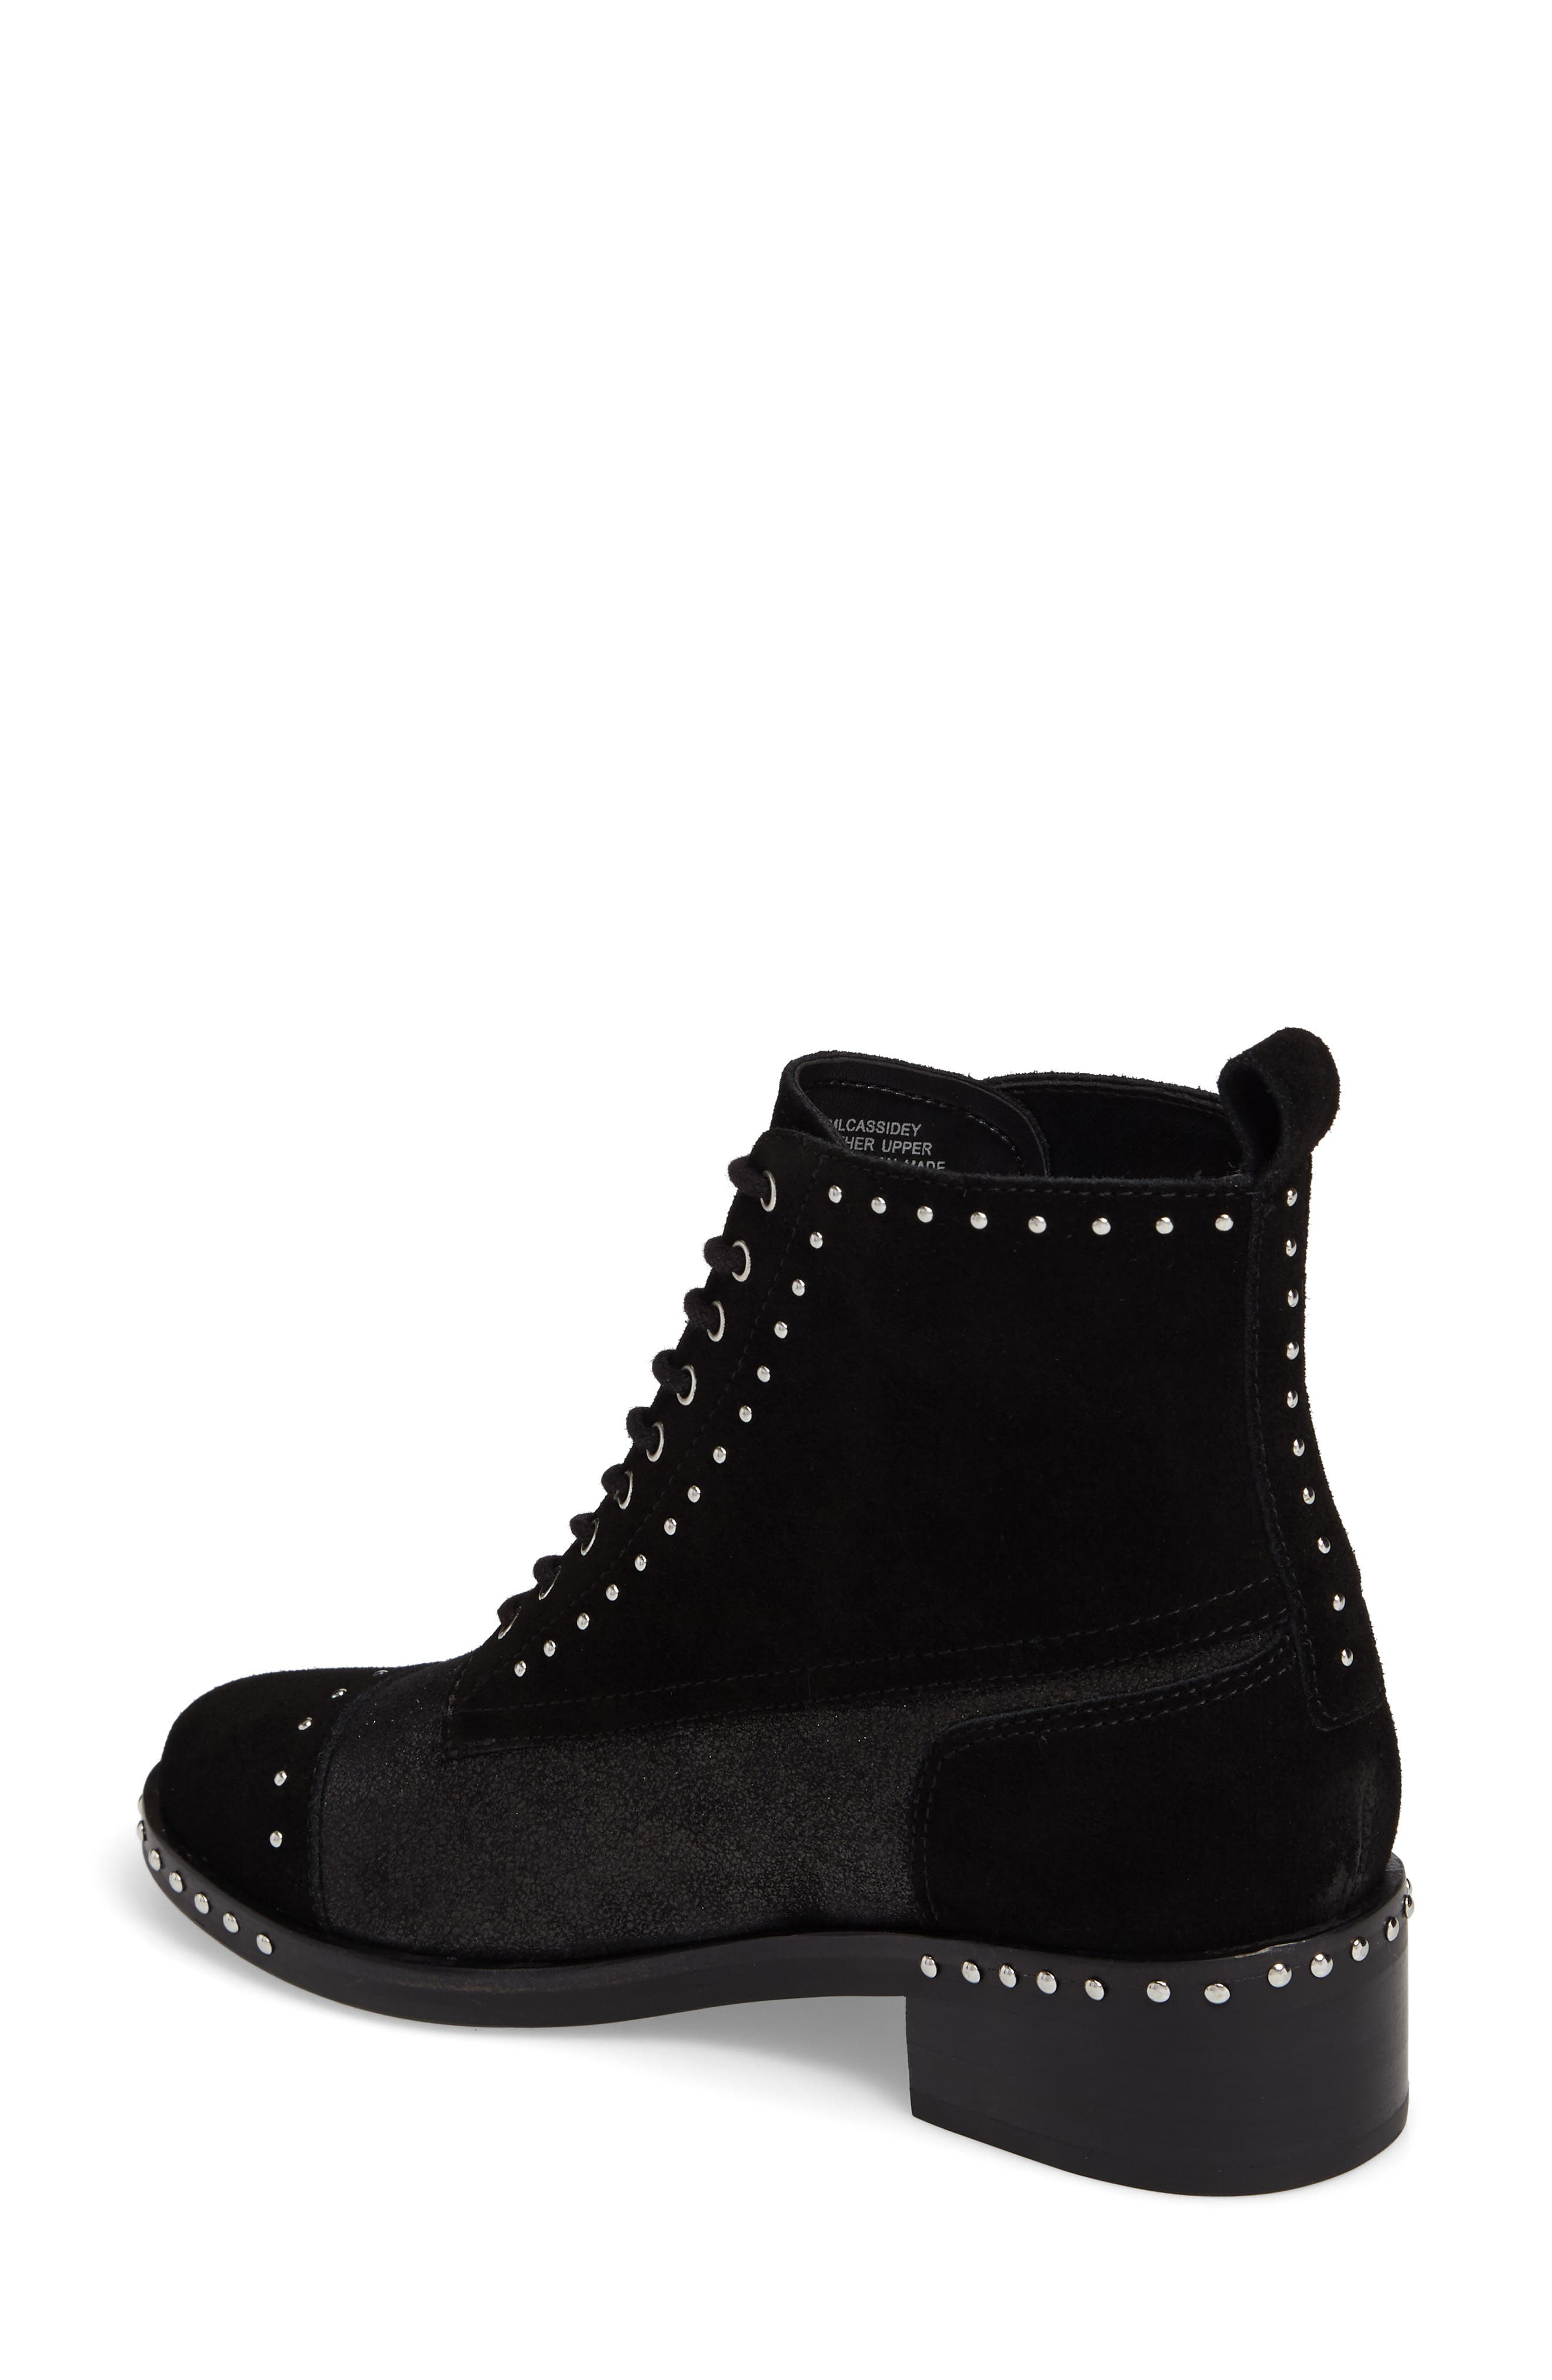 Cassidey Studded Cap Toe Bootie,                             Alternate thumbnail 2, color,                             Black Suede